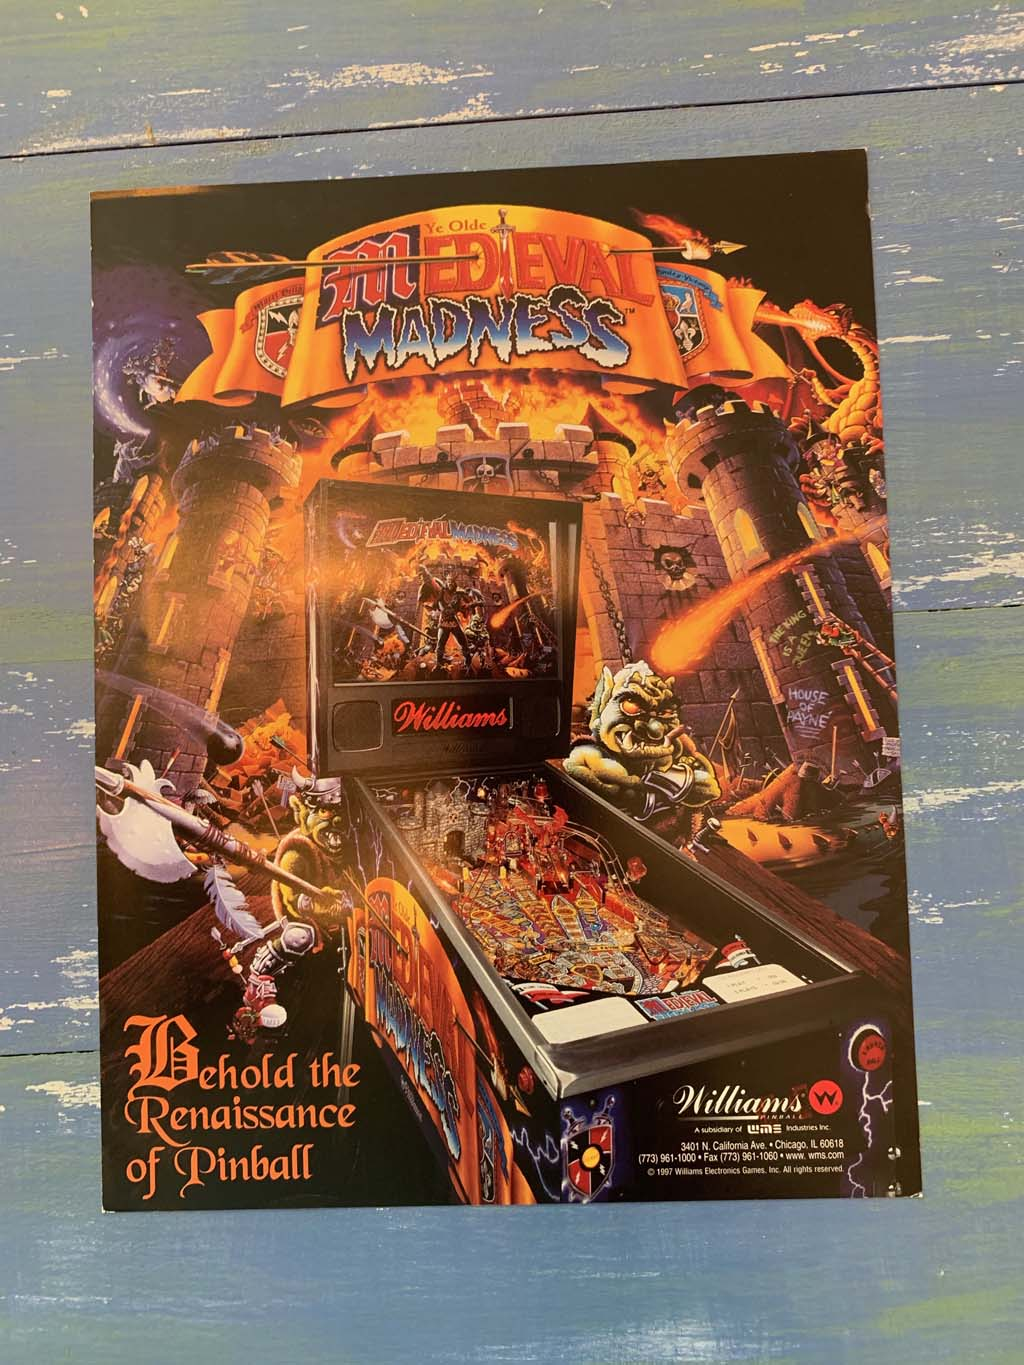 Medieval Madness Pinball Flyer